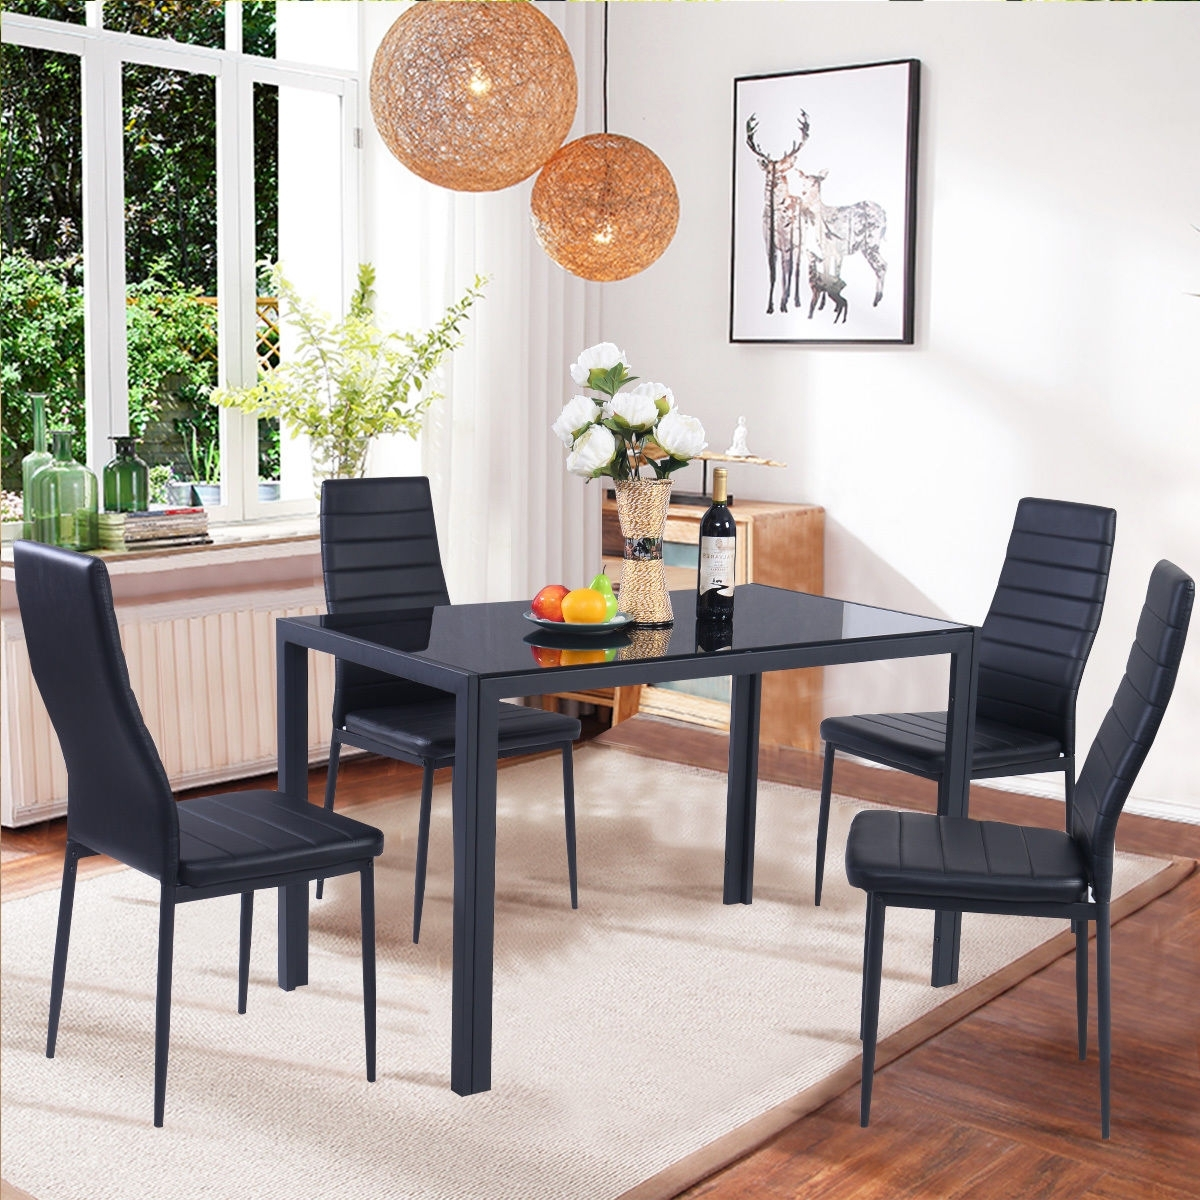 Dining Table Chair Sets With Preferred Costway 5 Piece Kitchen Dining Set Glass Metal Table And 4 Chairs (View 5 of 25)